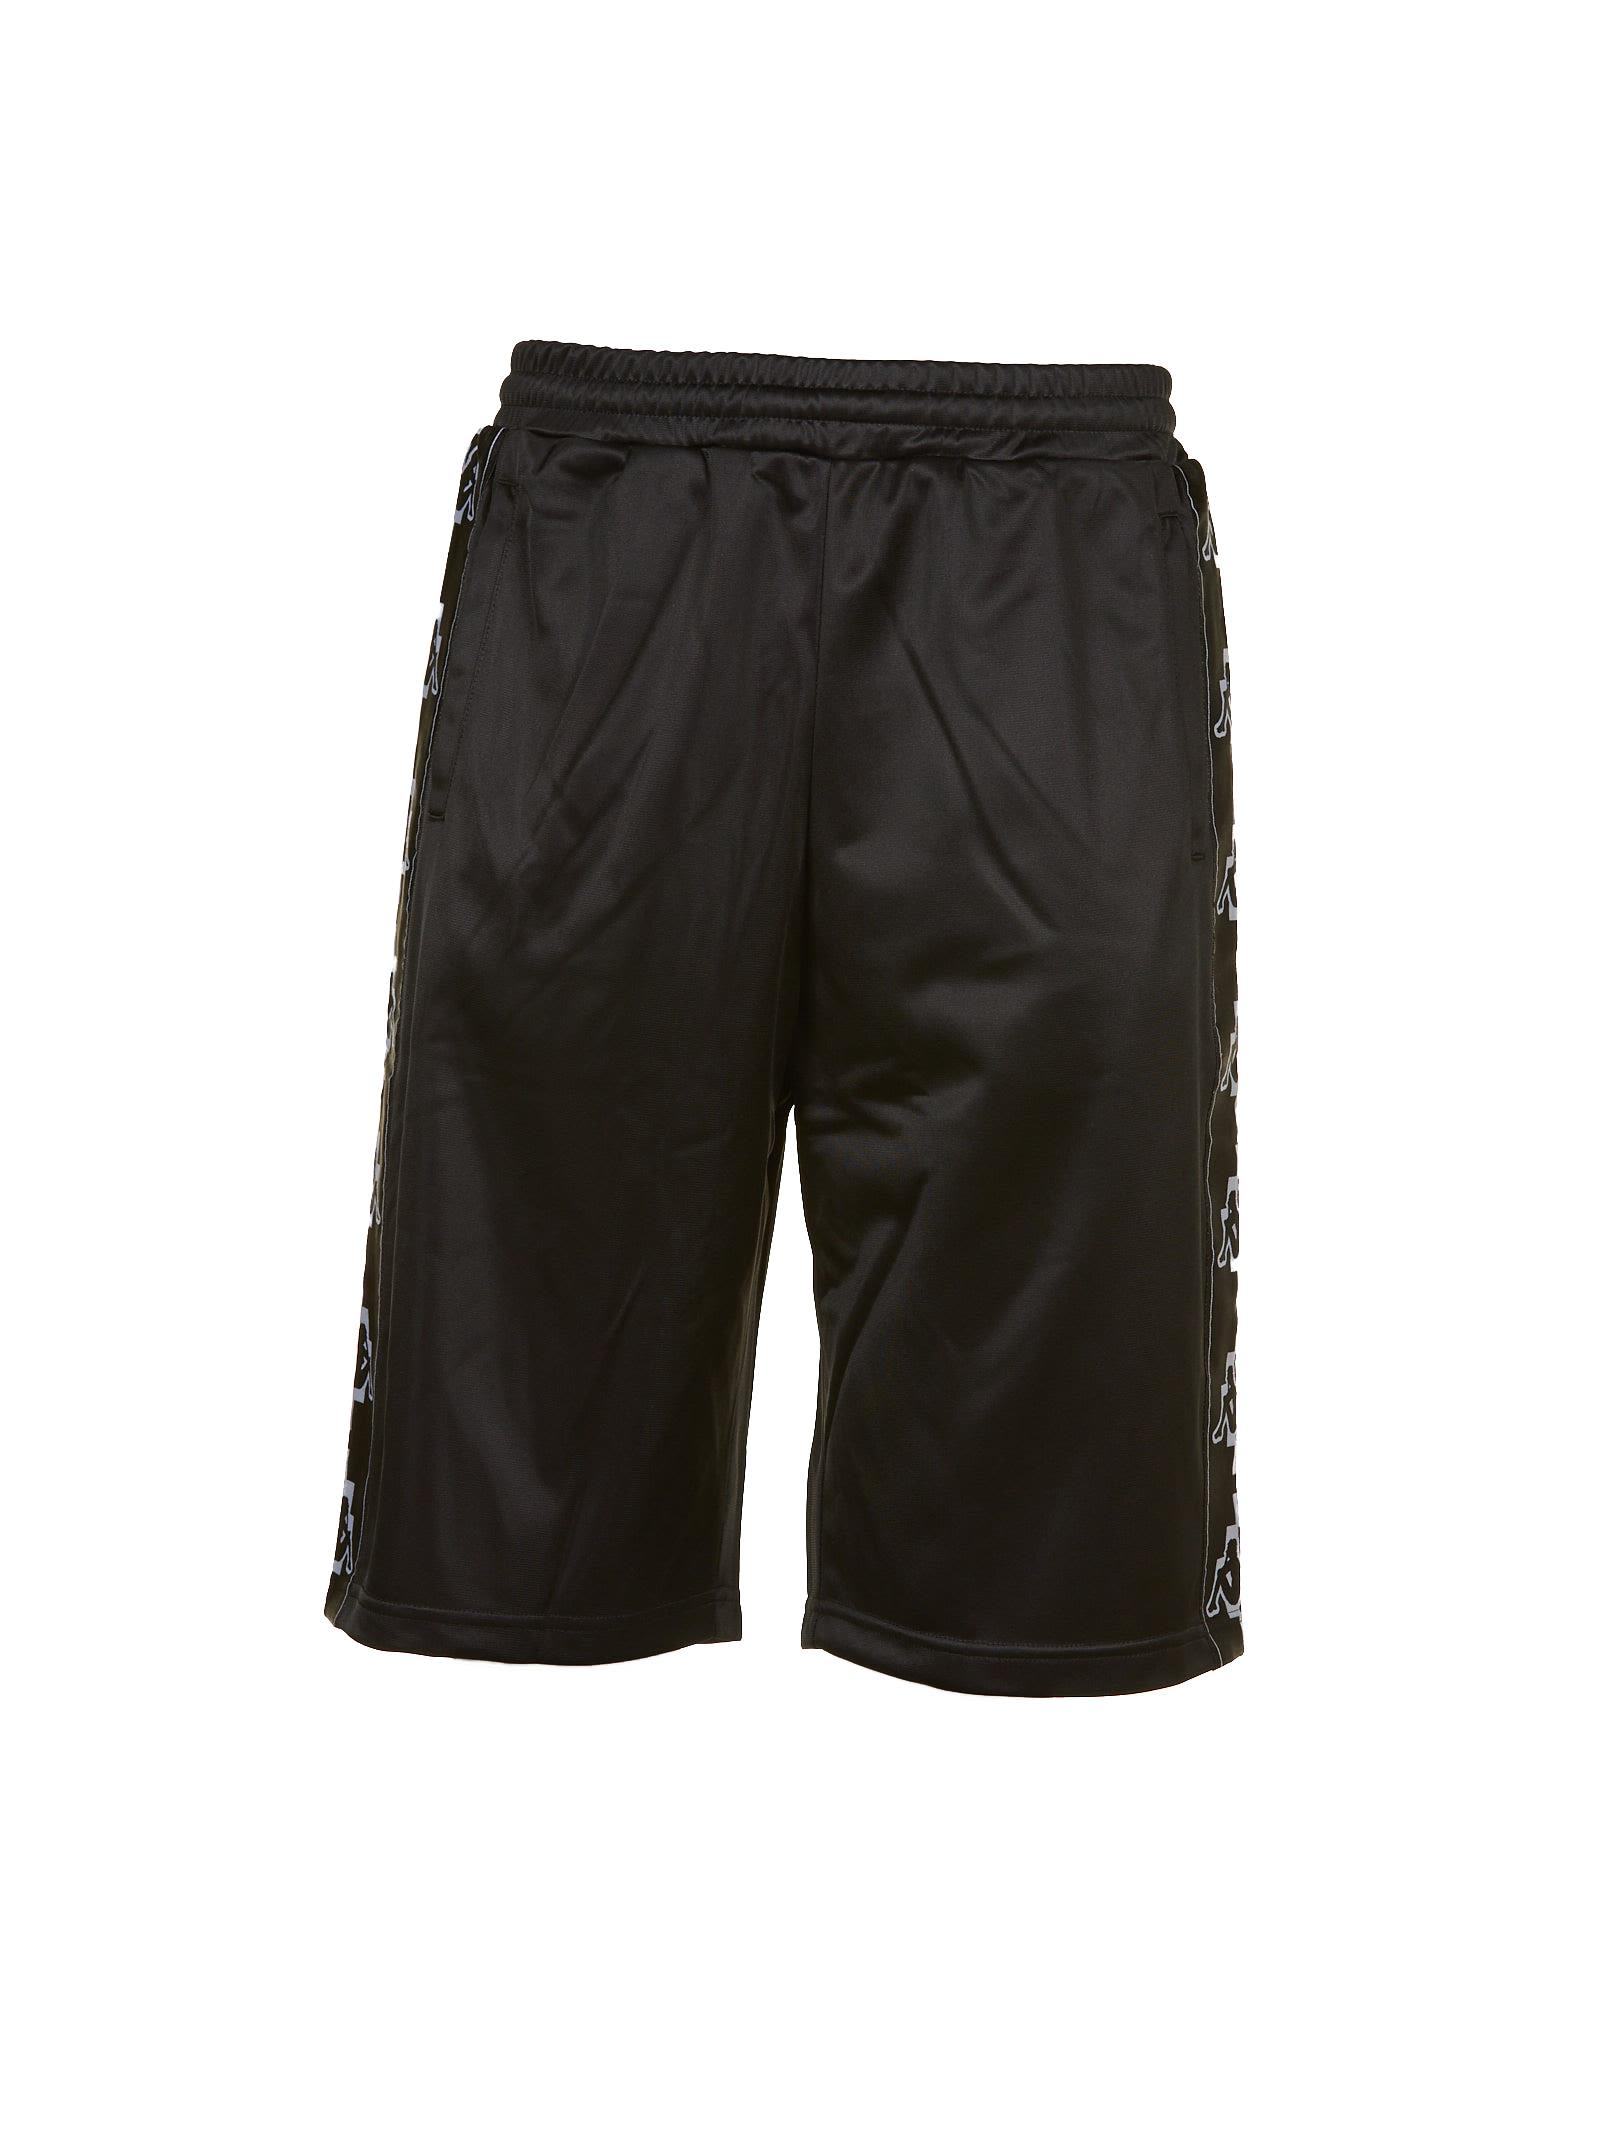 Marcelo Burlon Kappa Tape Shorts